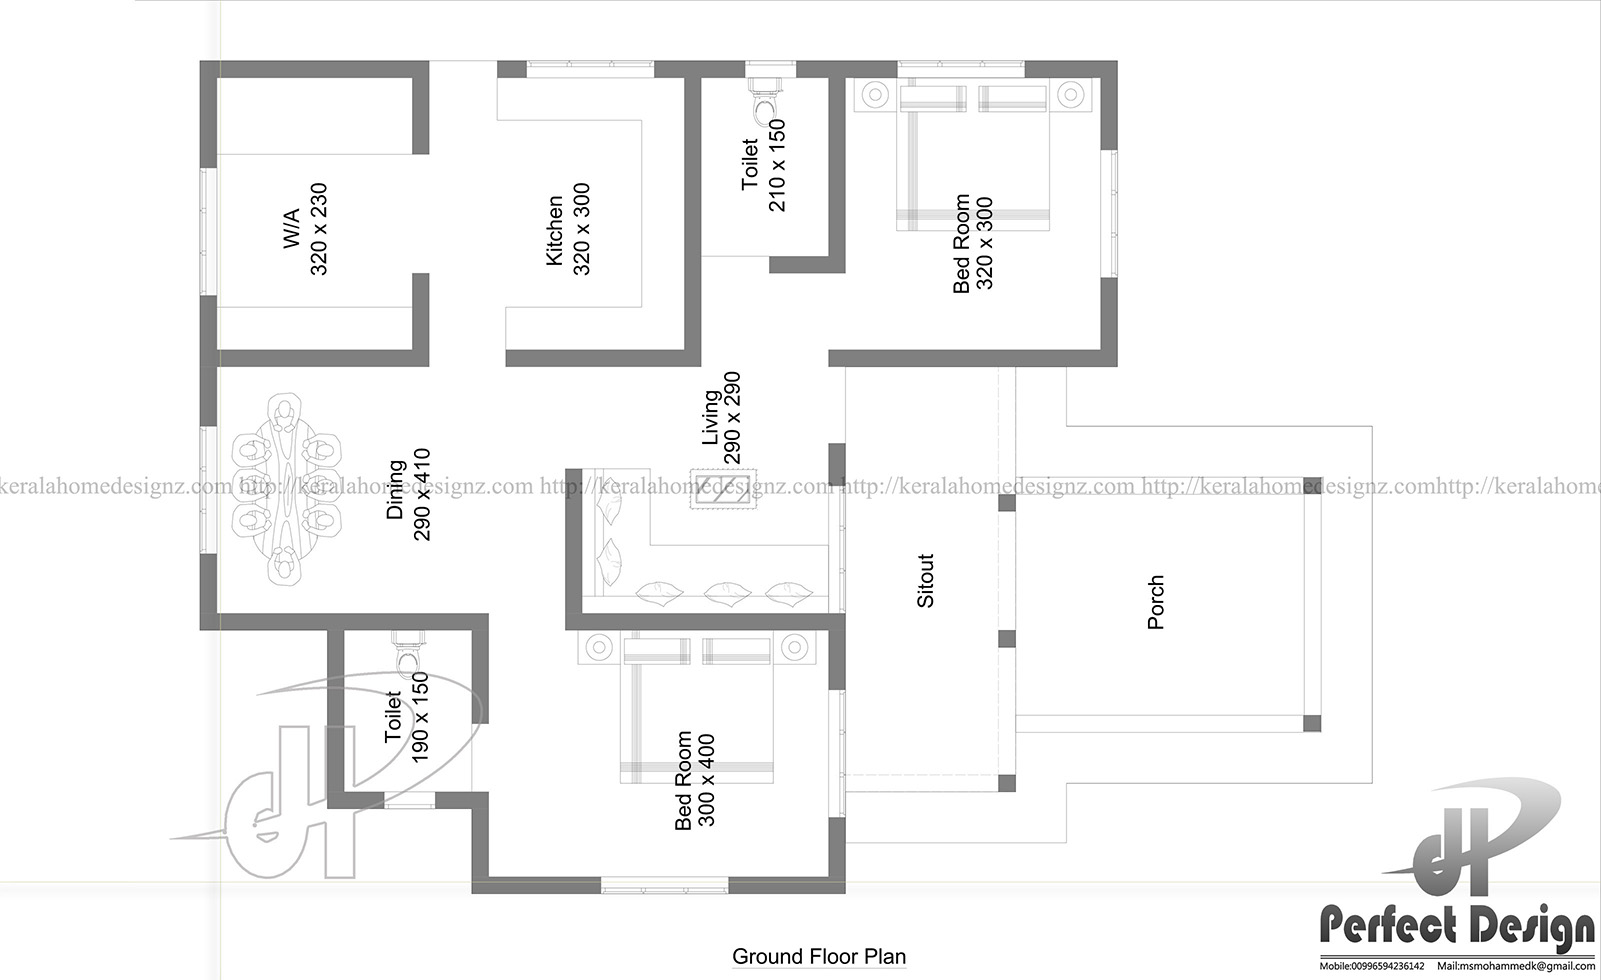 969 Sq Ft Beautiful Home Design Kerala Home Design